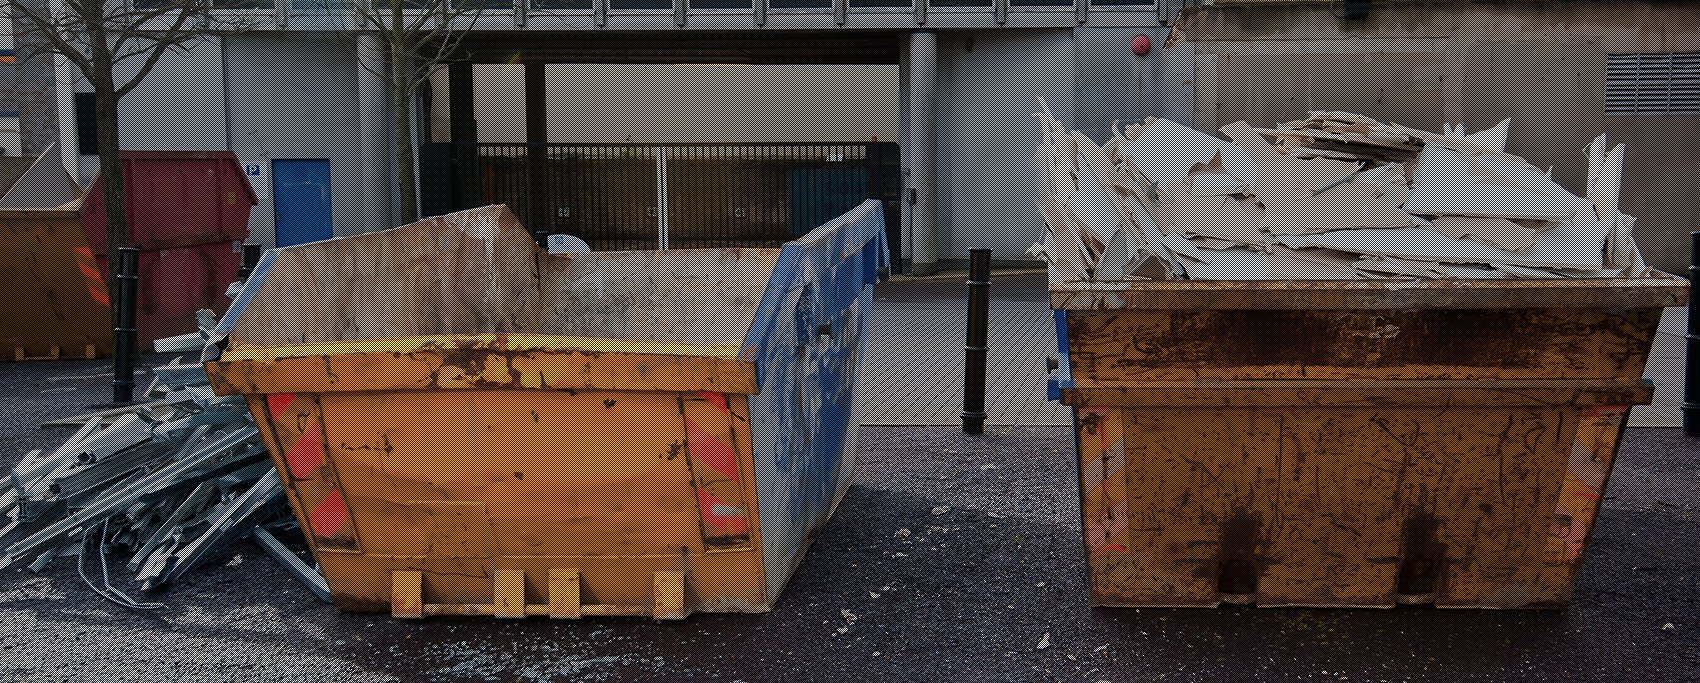 Skips in Car Park